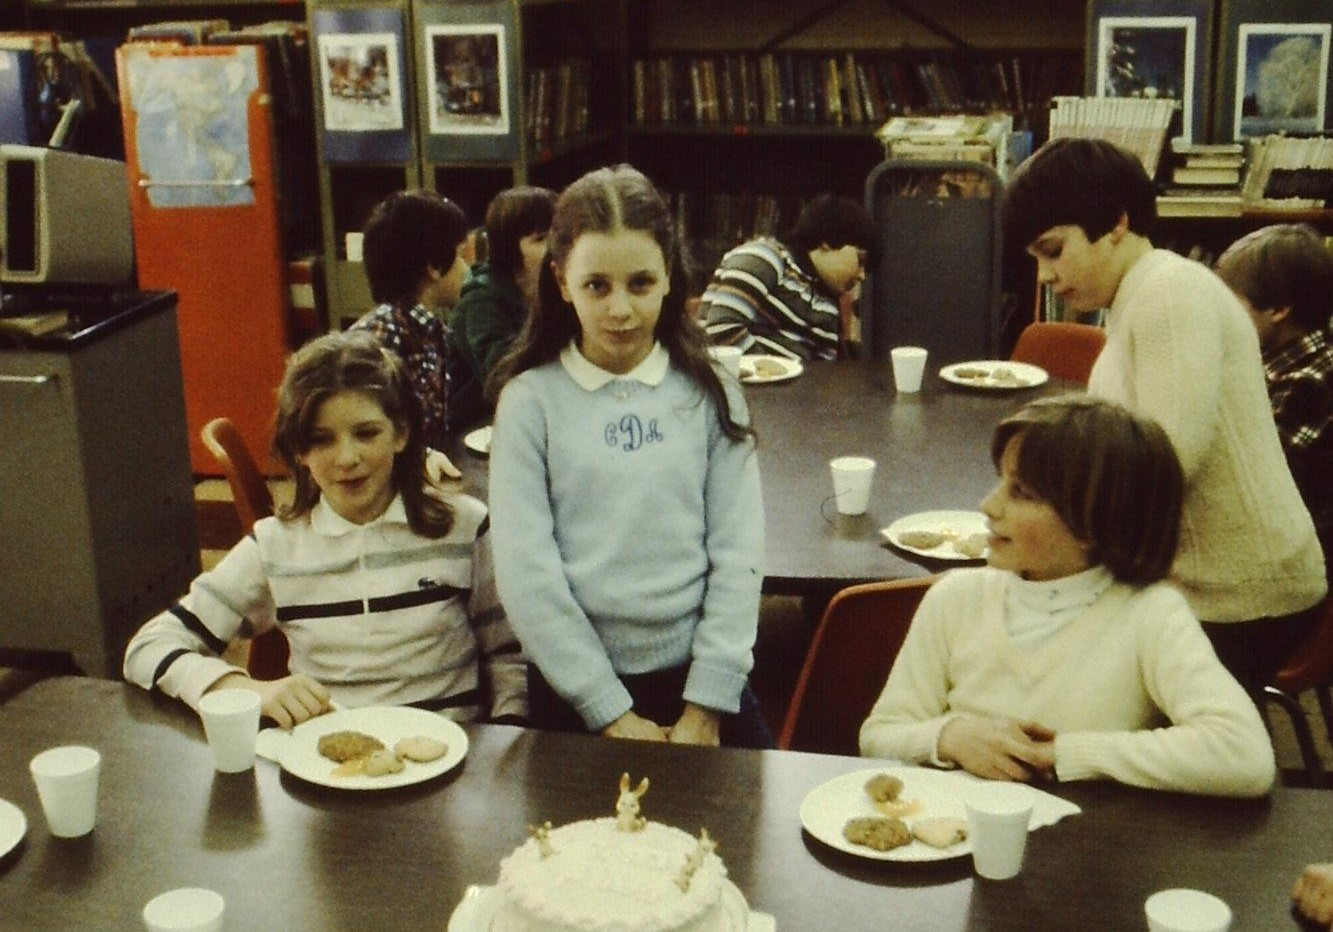 THE GIRL IN THE PREPPY MONOGRAMMED SWEATER, 1980